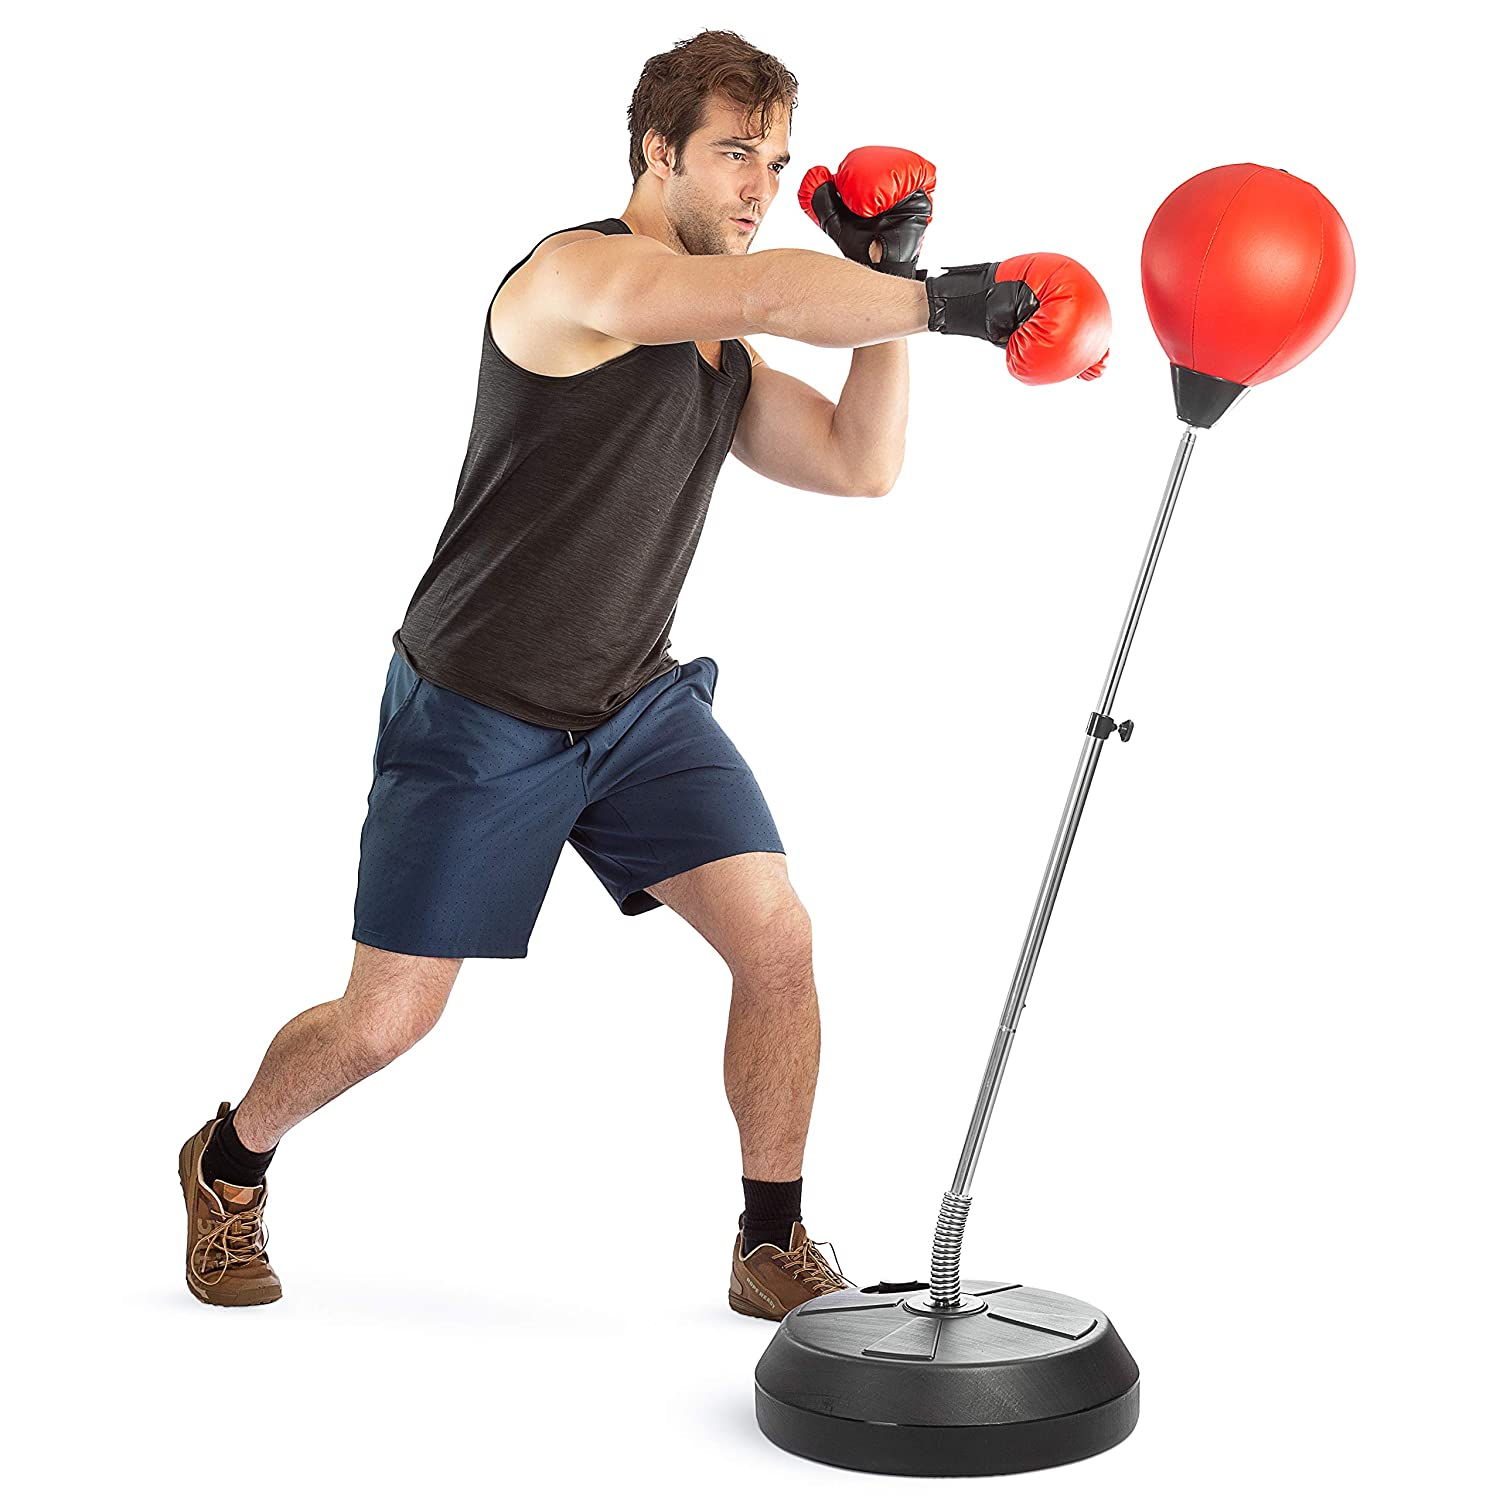 Image result for standing too far from speed bag